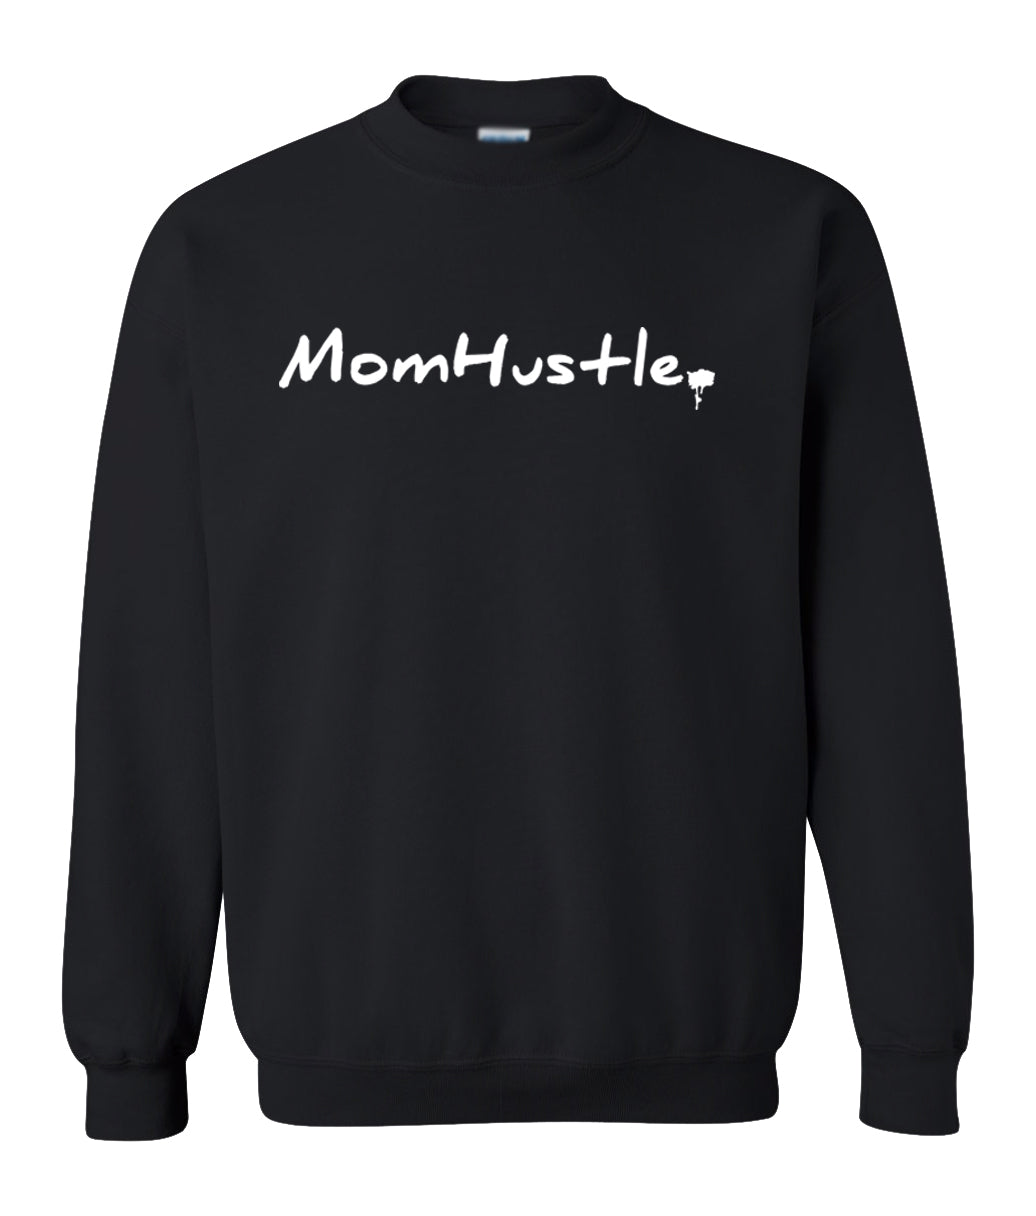 black mom hustle sweatshirt